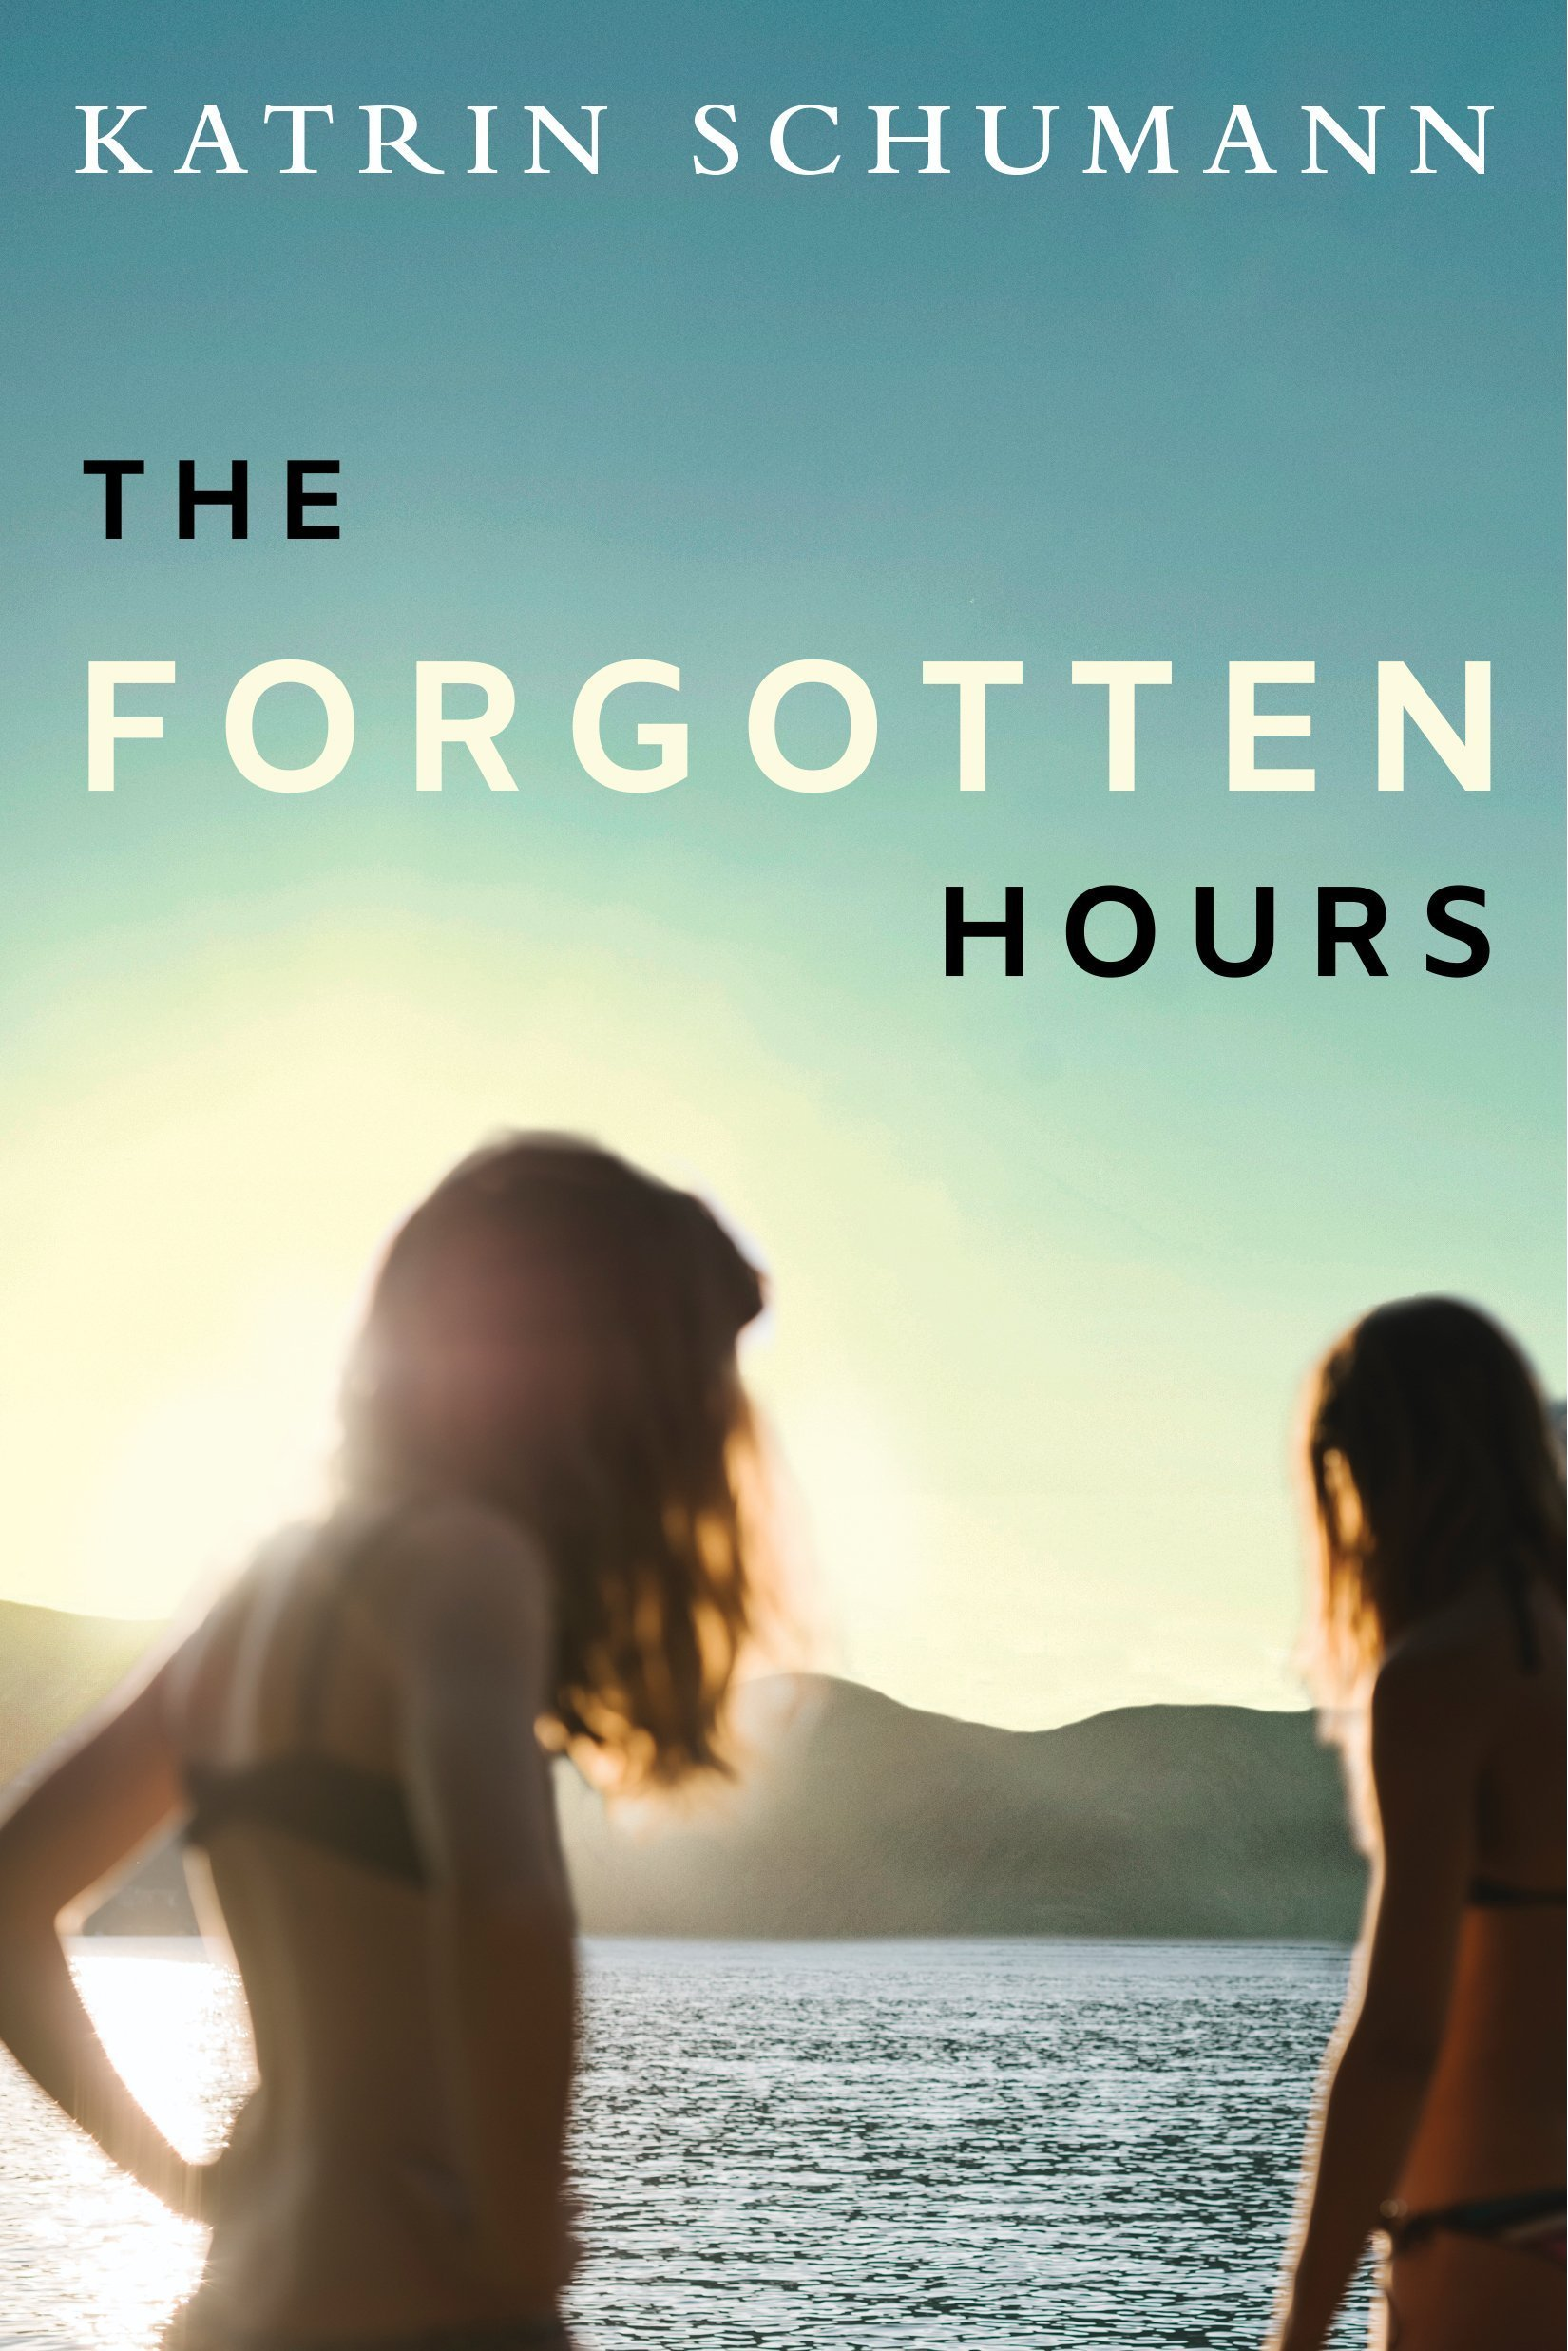 The Forgotten Hours